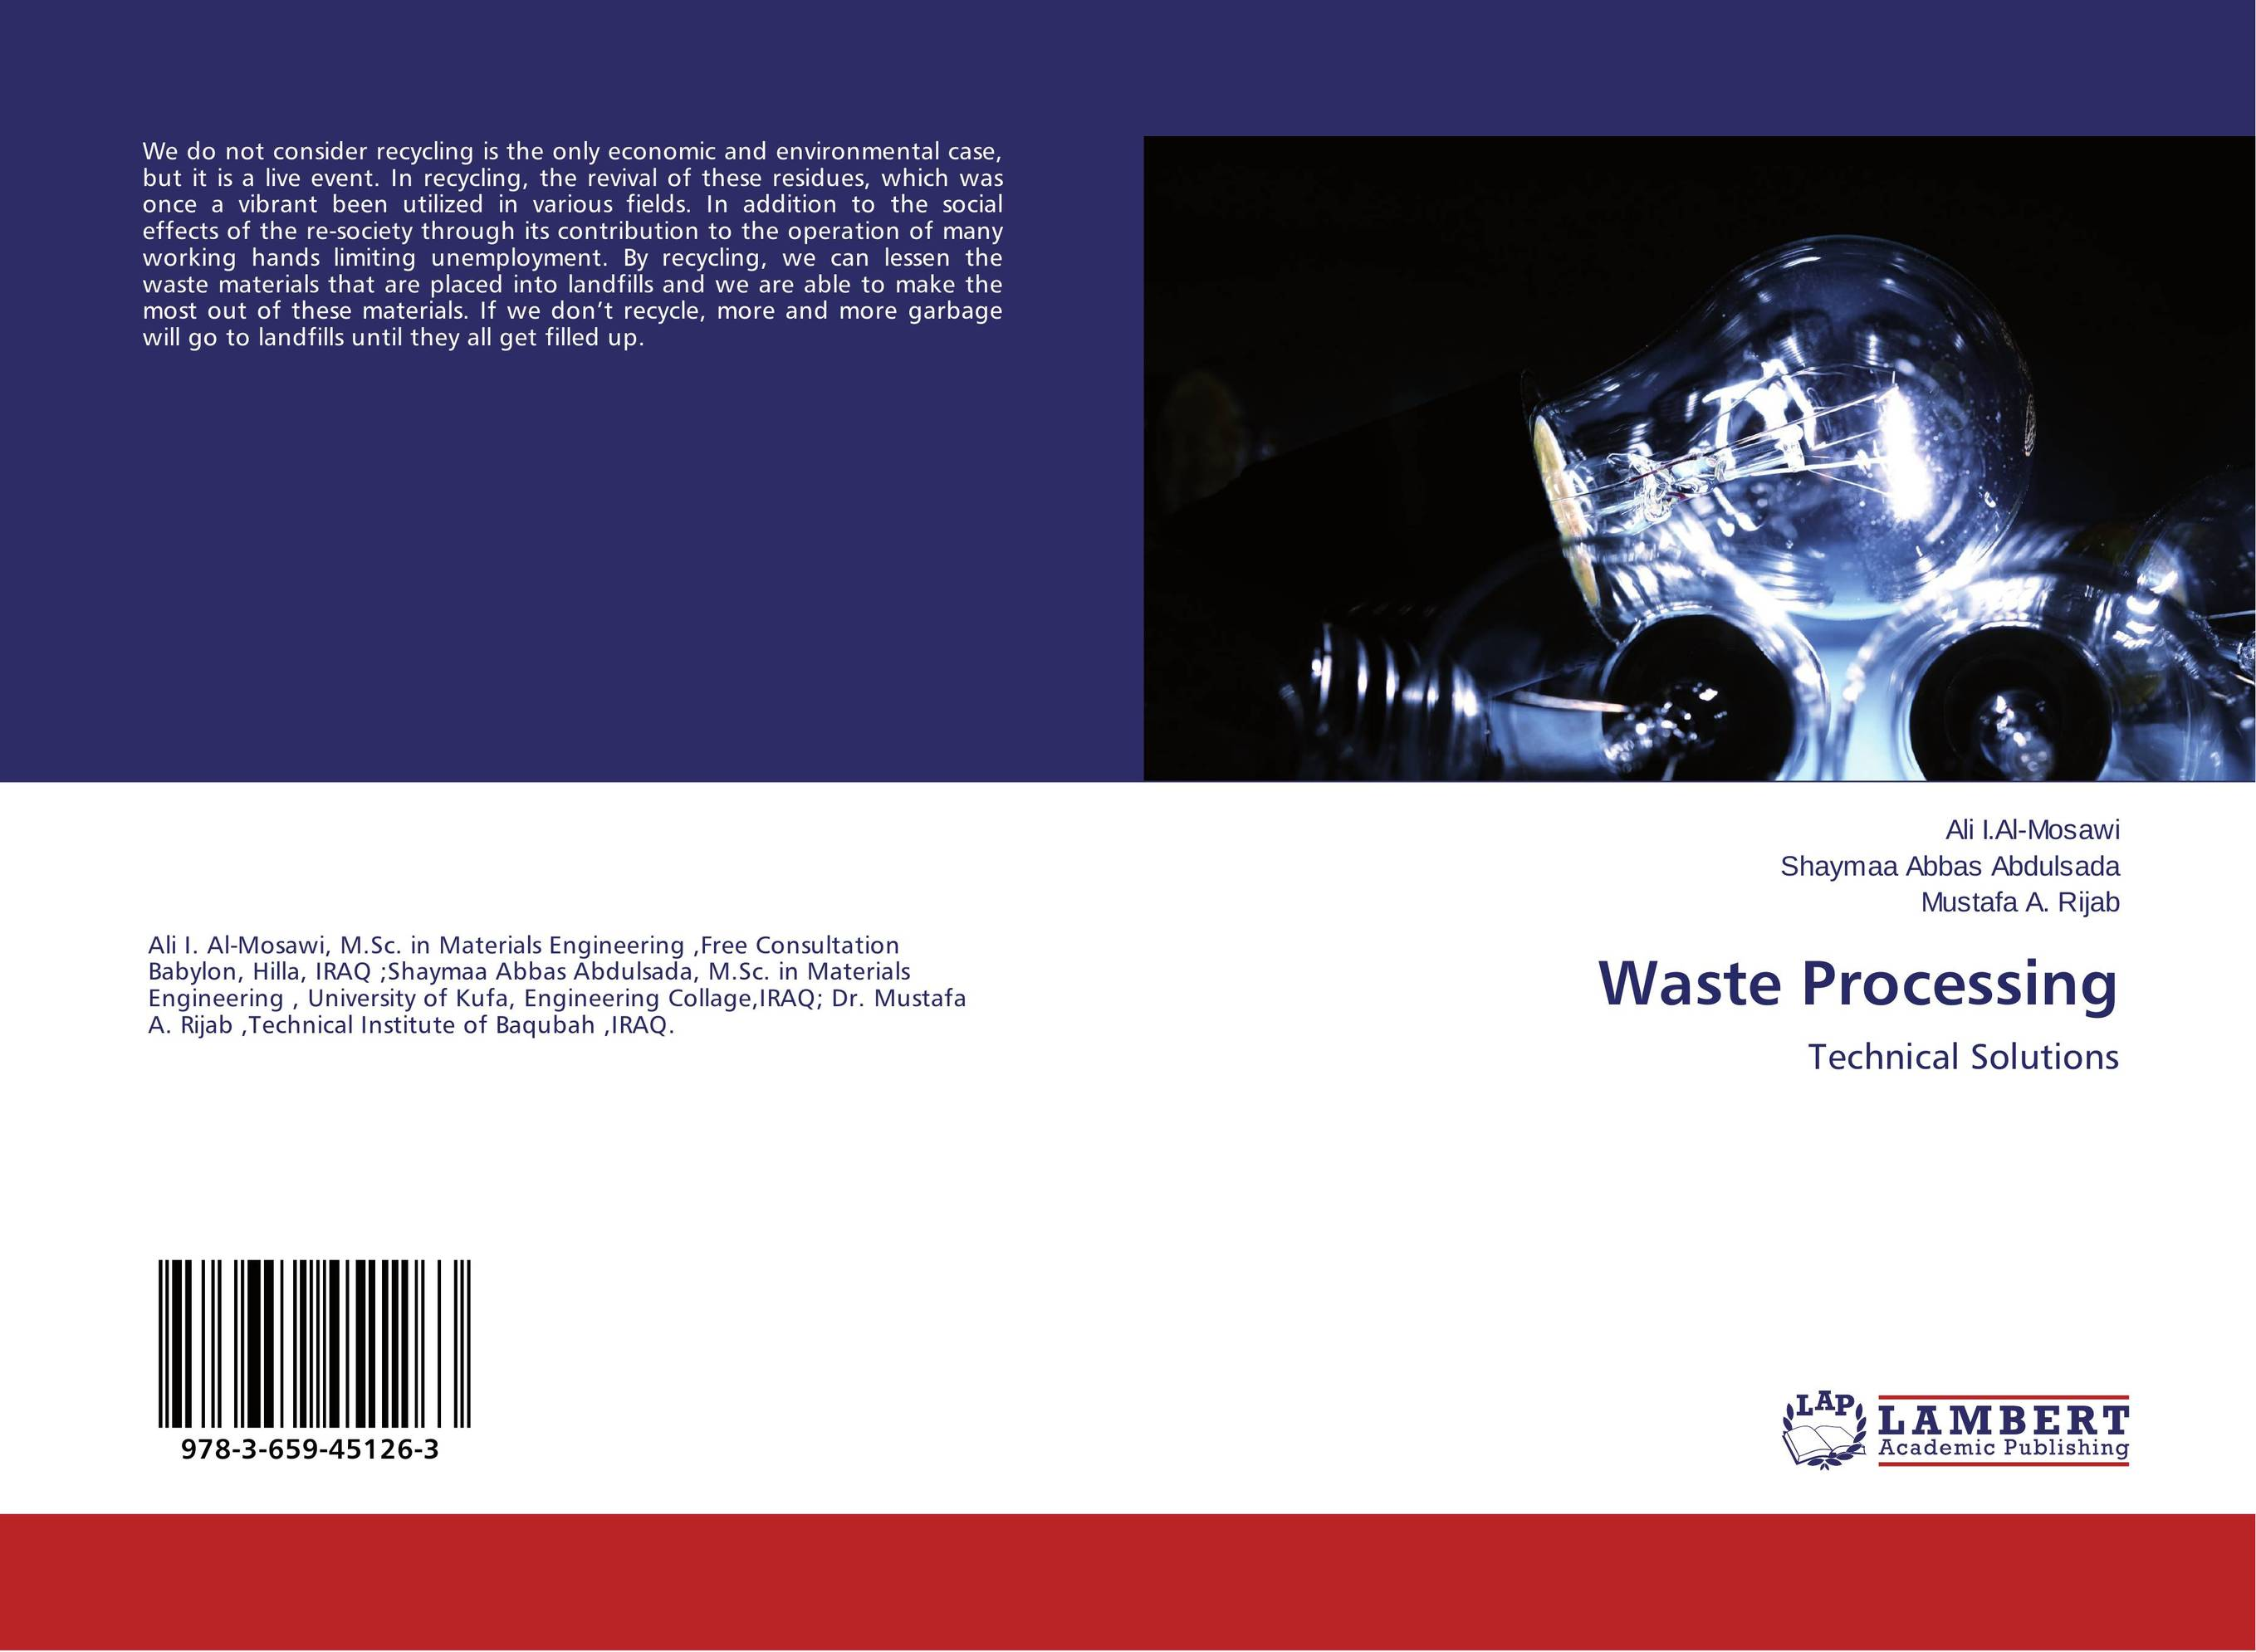 Waste Processing recycling of waste materials